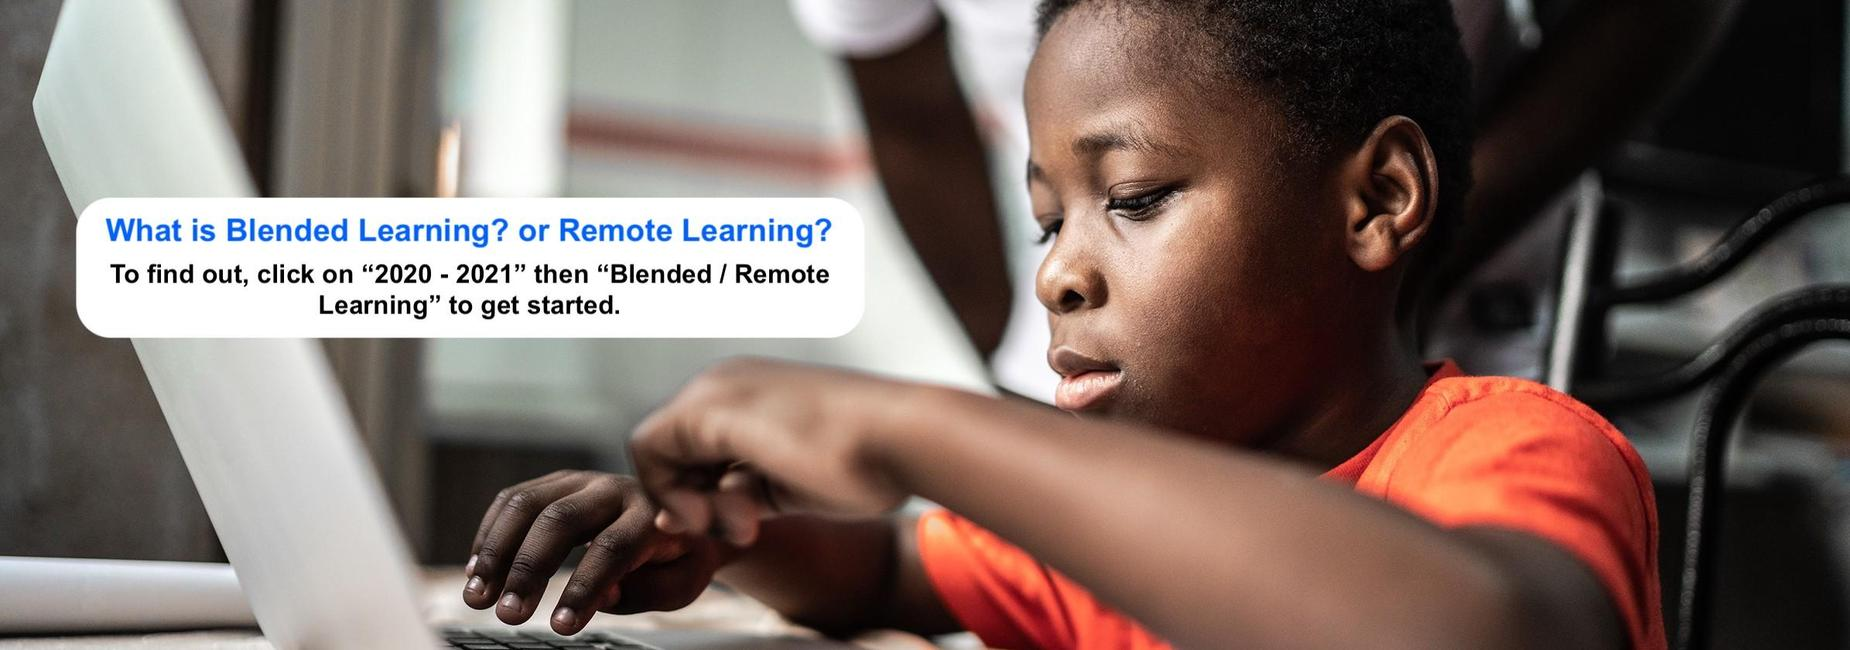 What is Blended Learning? Or Remote Learning? To find out, click on